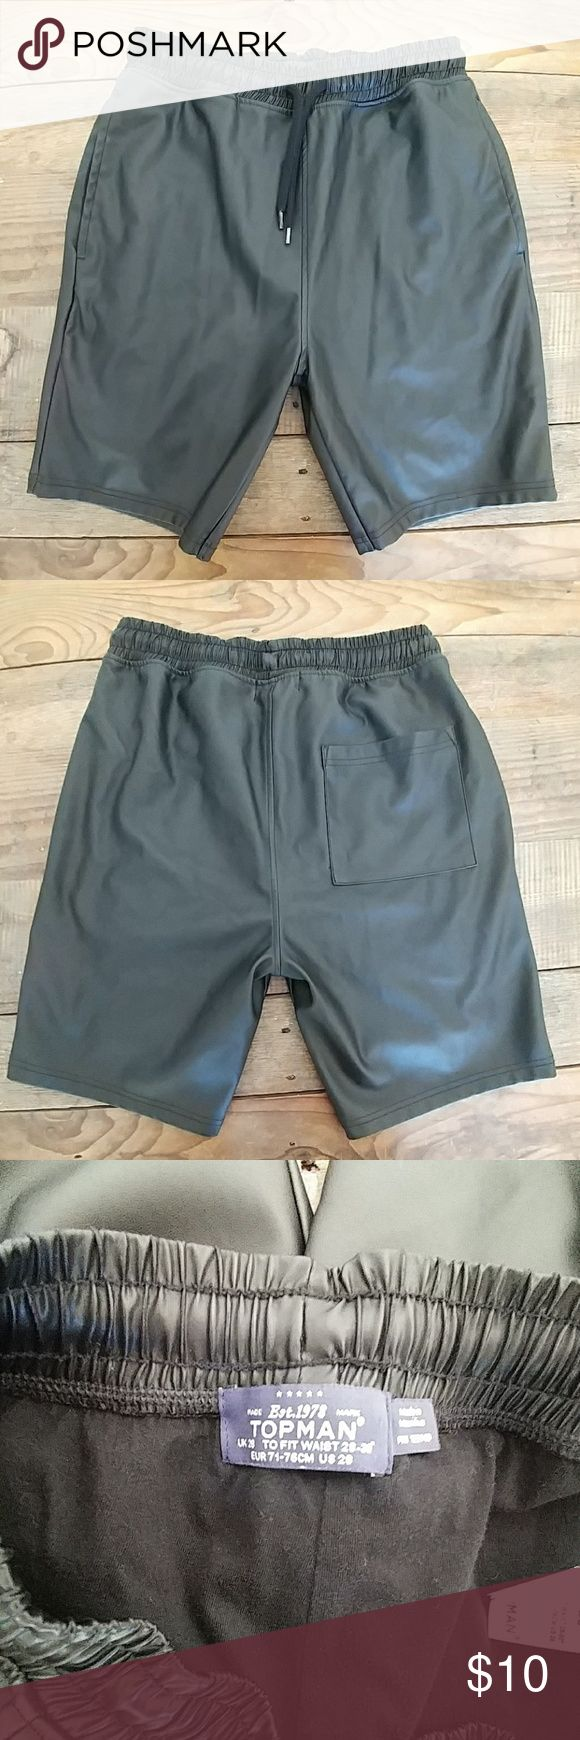 Topman shorts artificial leather size 28 Men's Topman shorts artificial leather size 28. Great used condition. No stains or holes. Topman Shorts